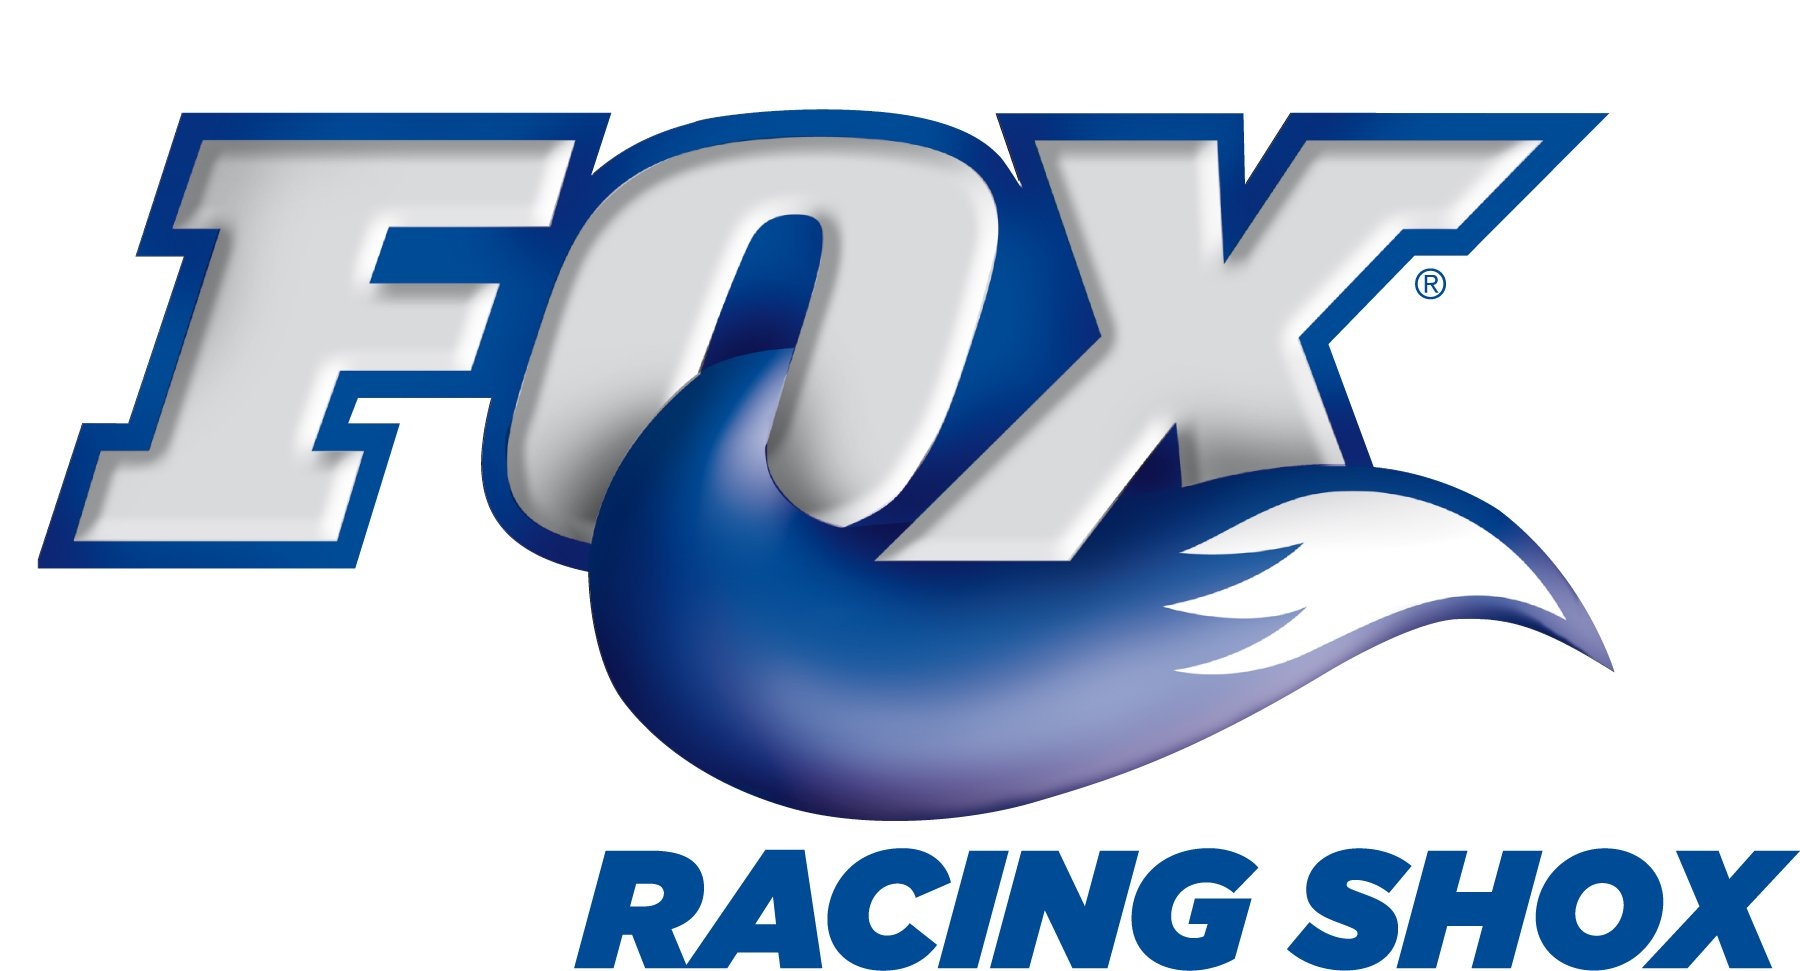 Fox Racing Shox Logo Wallpaper 1800x971